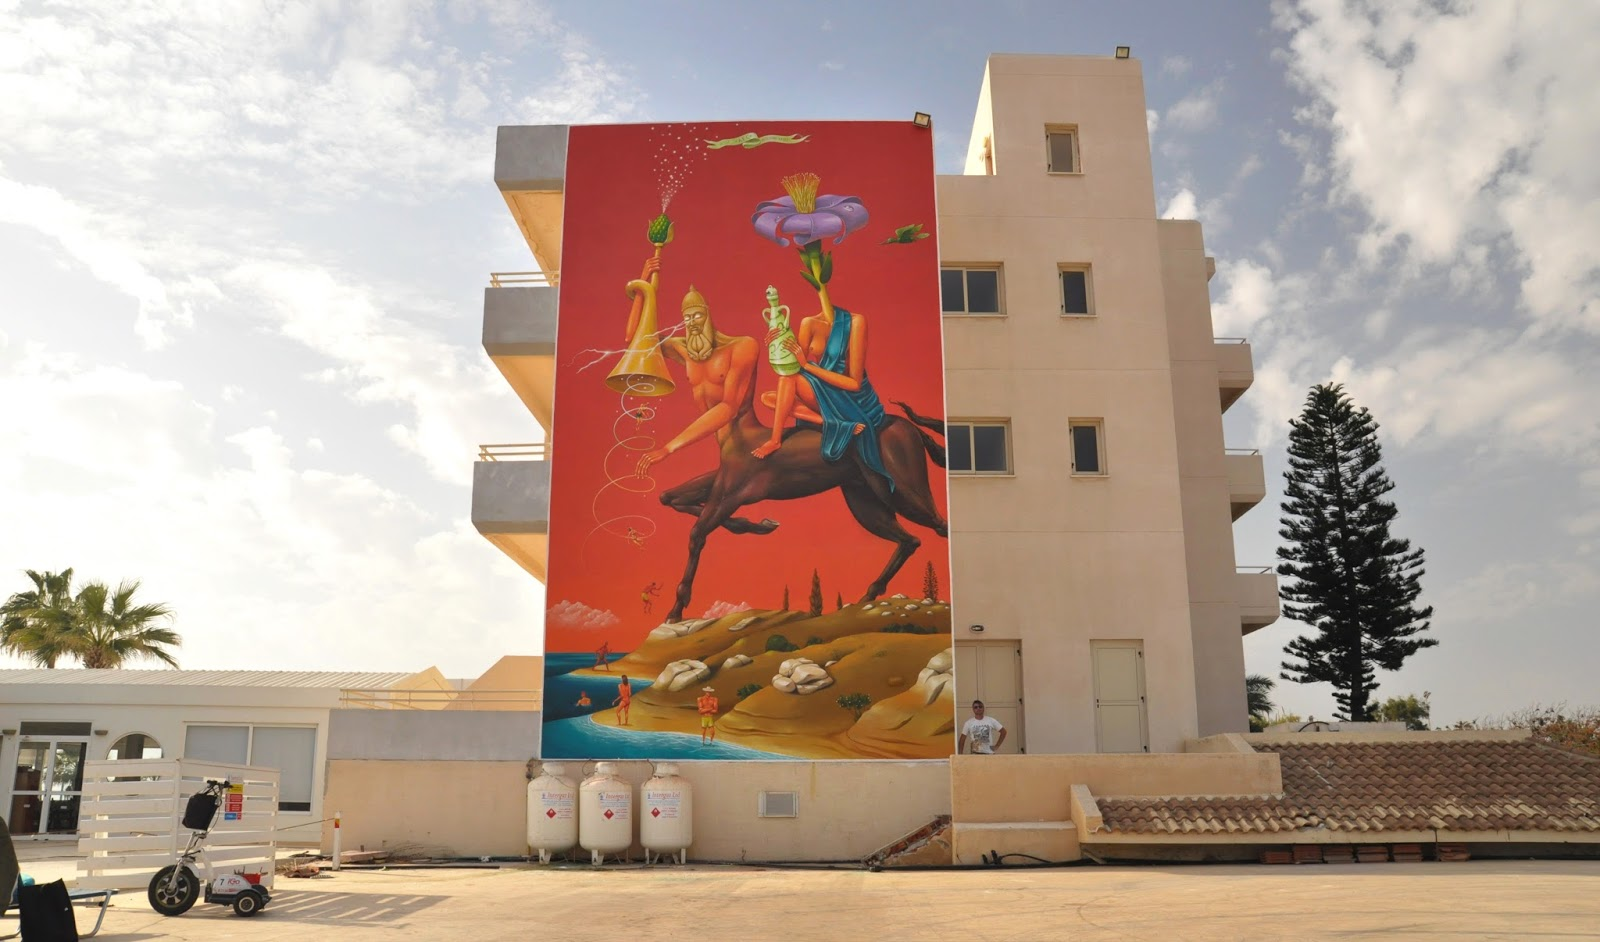 interesni-kazki-new-mural-in-ayia-napa-cyprus-01